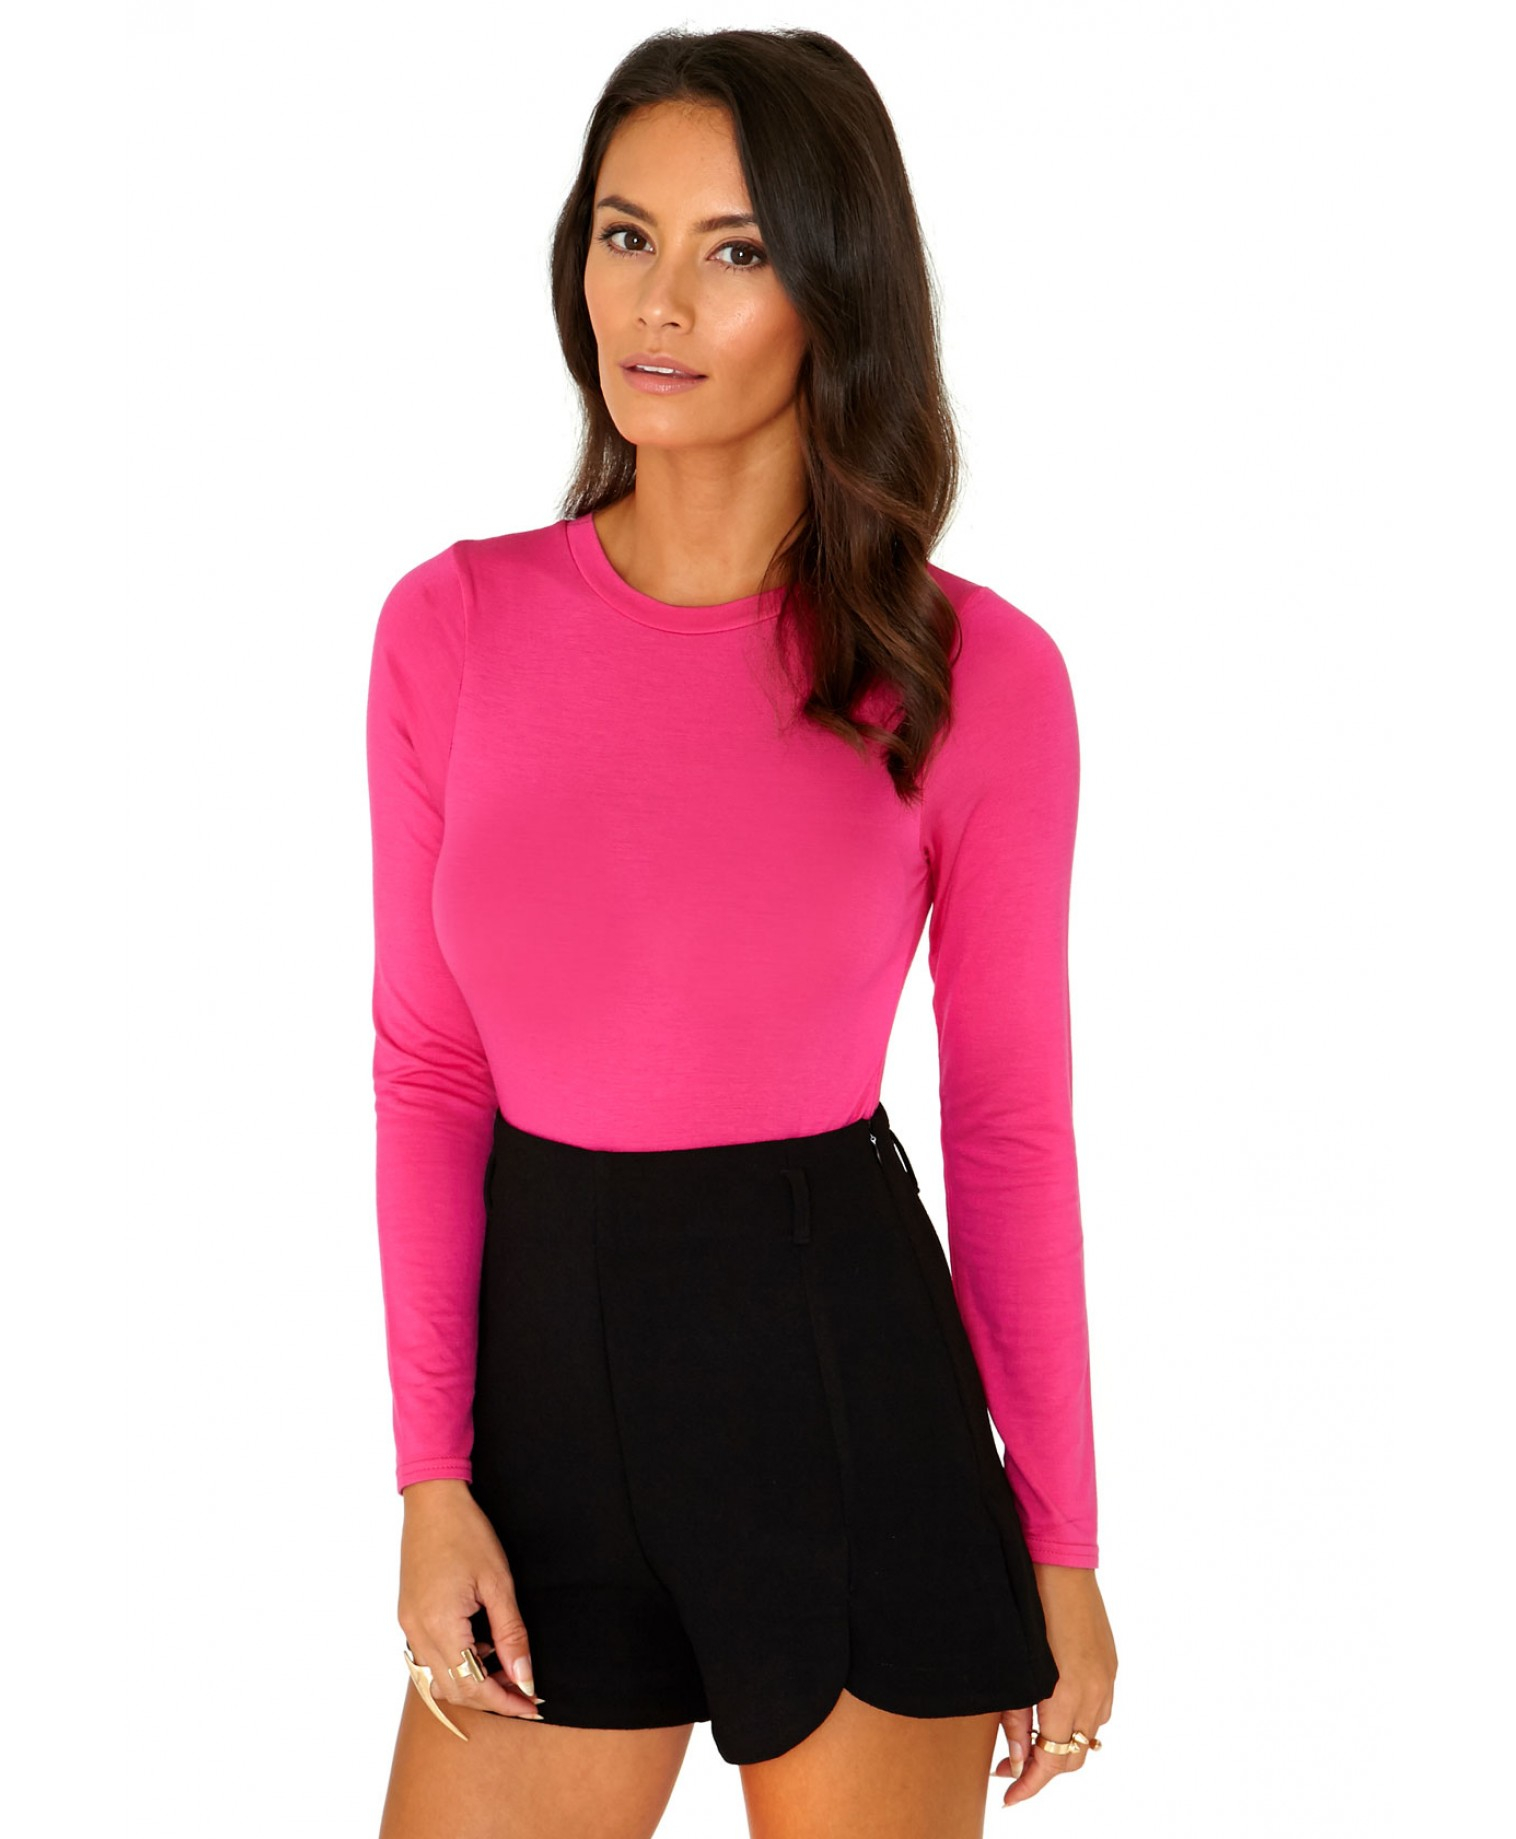 Lyst - Missguided Gerta Value Long Sleeve Bodysuit in Hot Pink in Pink 1cd177cf7